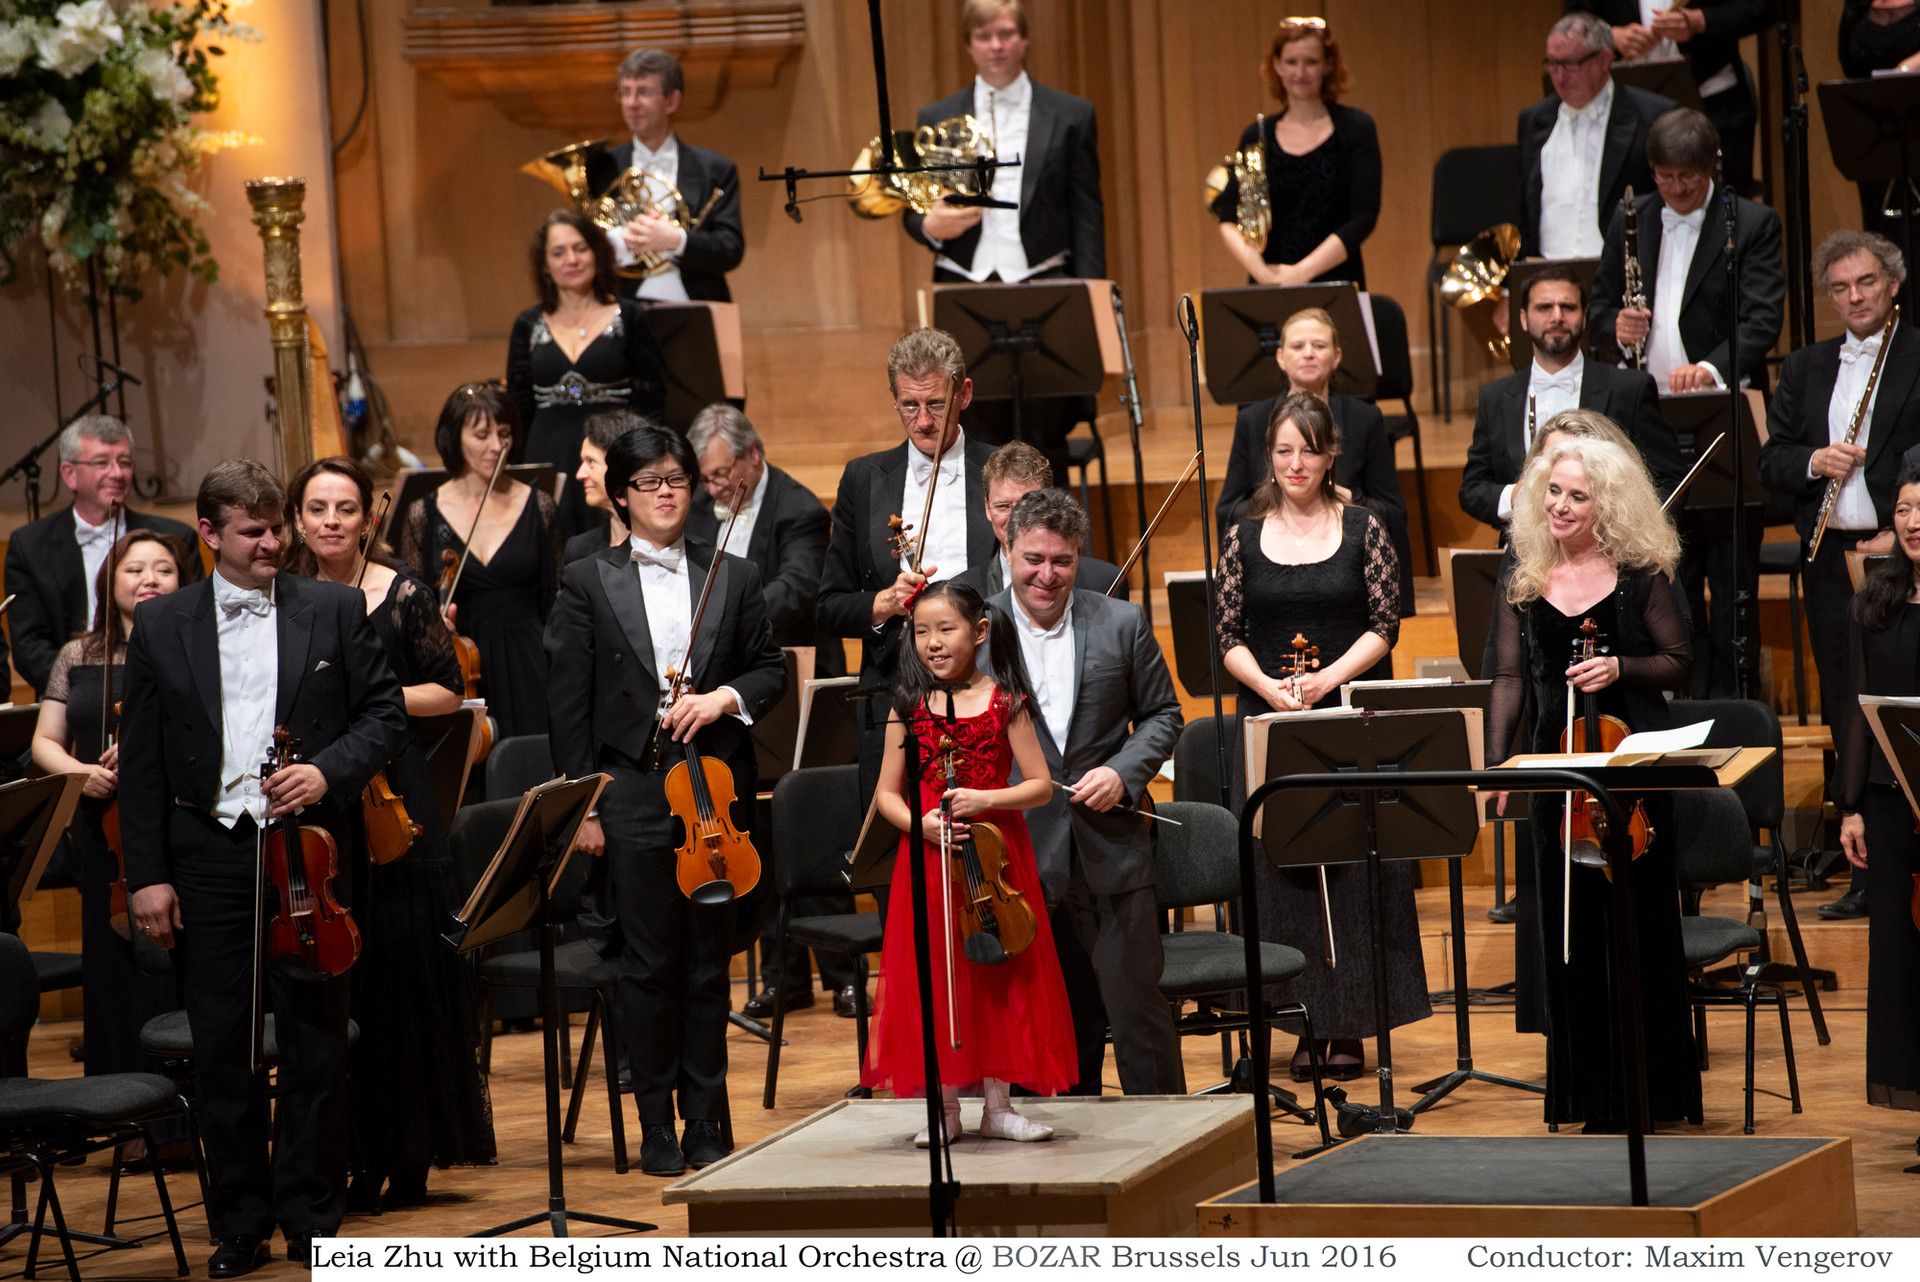 Leia Zhu with Belgium National Orchestra @ BOZAR Brussels Jun 2016